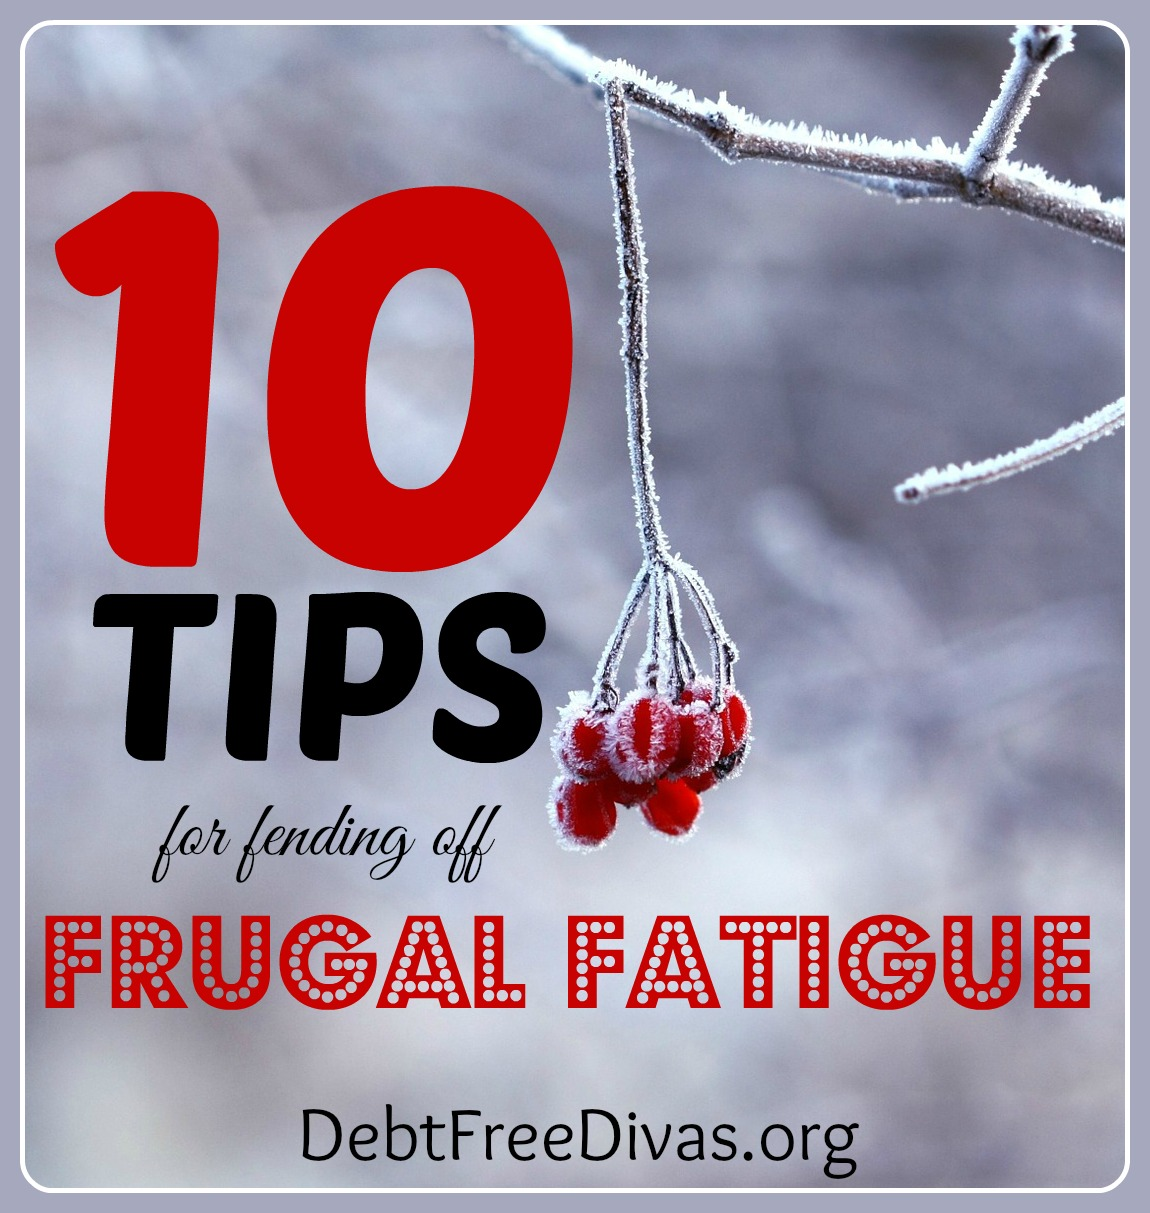 10 Tips to Fend of Frugal fatigue